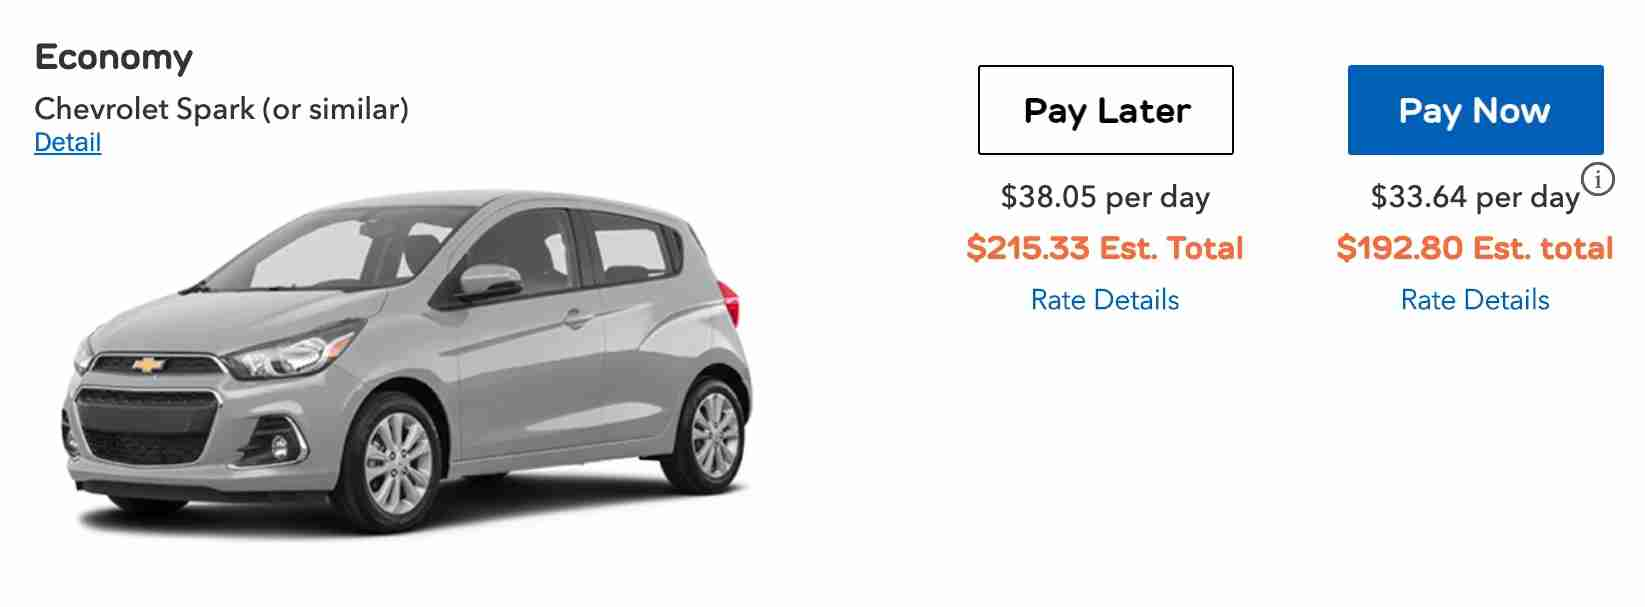 Thrifty rental car economy rental